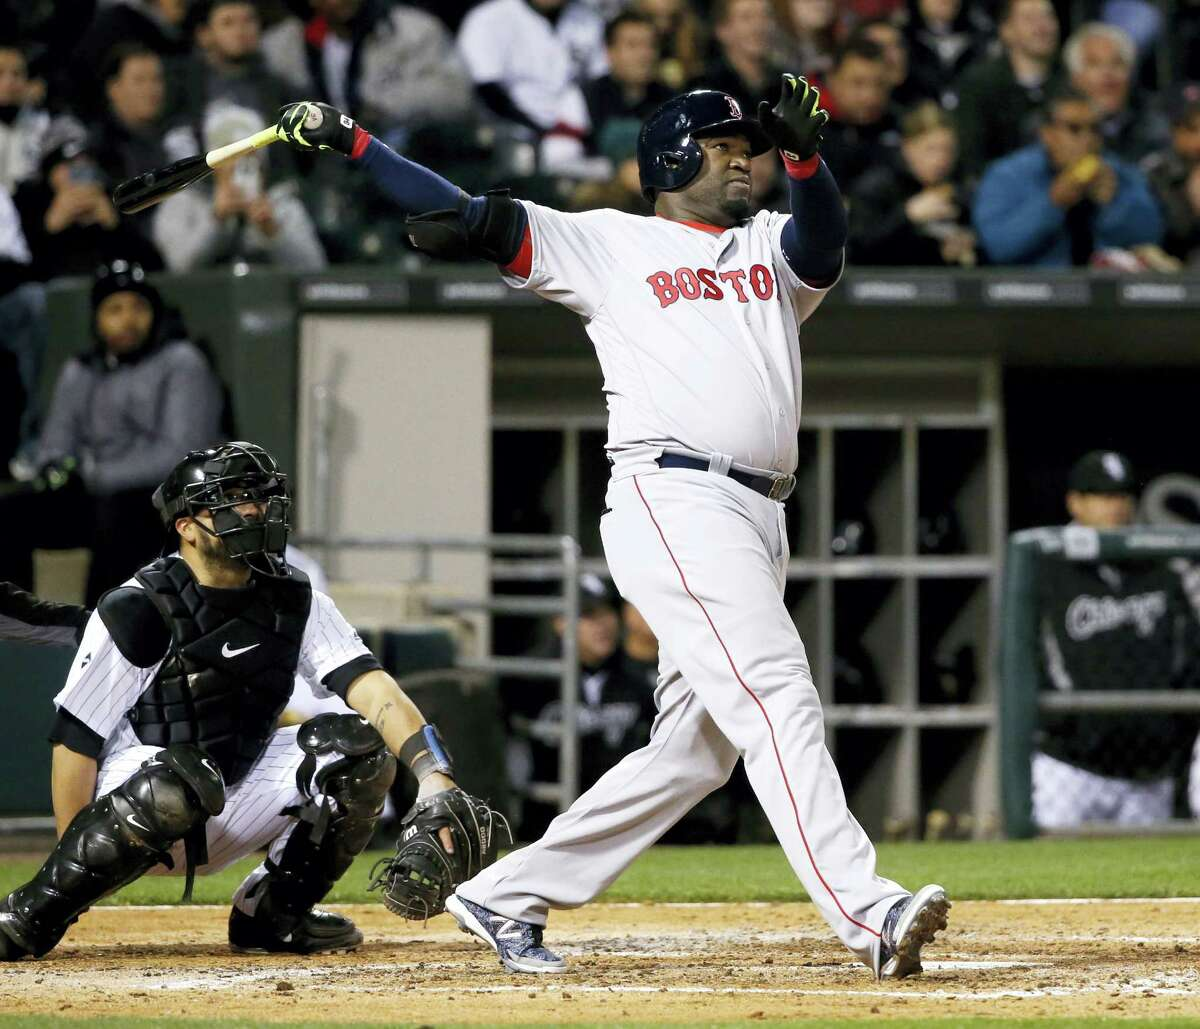 Boston Red Sox's David Ortiz watches his two-run home run off Chicago White Sox starting pitcher Carlos Rodon, also scoring Xander Bogaerts, during the fifth inning of a baseball game Wednesday, May 4, 2016, in Chicago. Watching with Ortiz is catcher Dioner Navarro. (AP Photo/Charles Rex Arbogast)